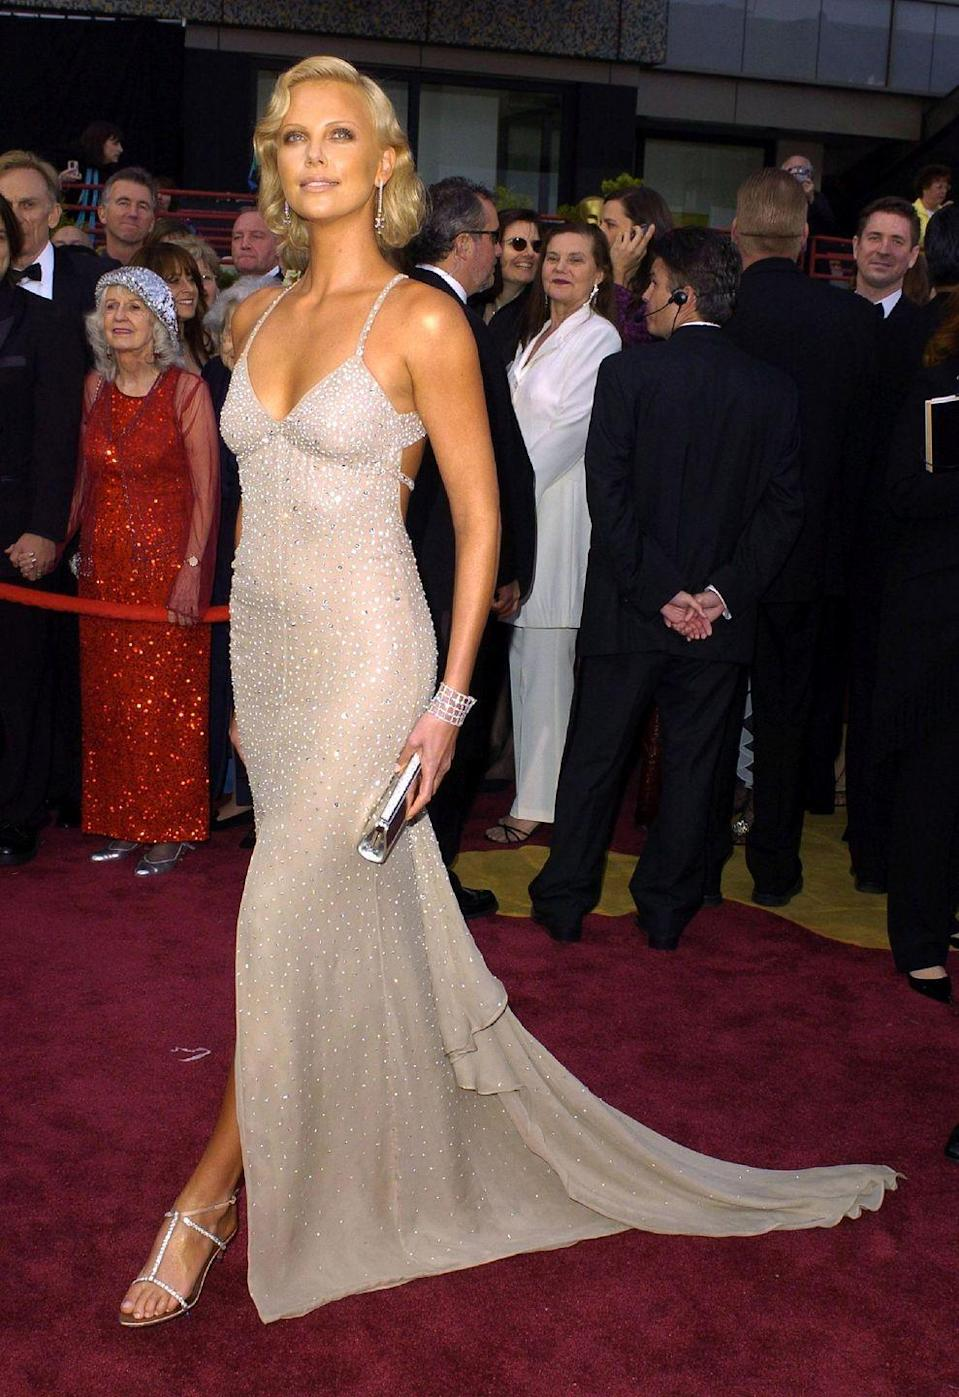 <p>The actress scintillated in a beige bedazzled gown at the Oscars in 2004.</p>